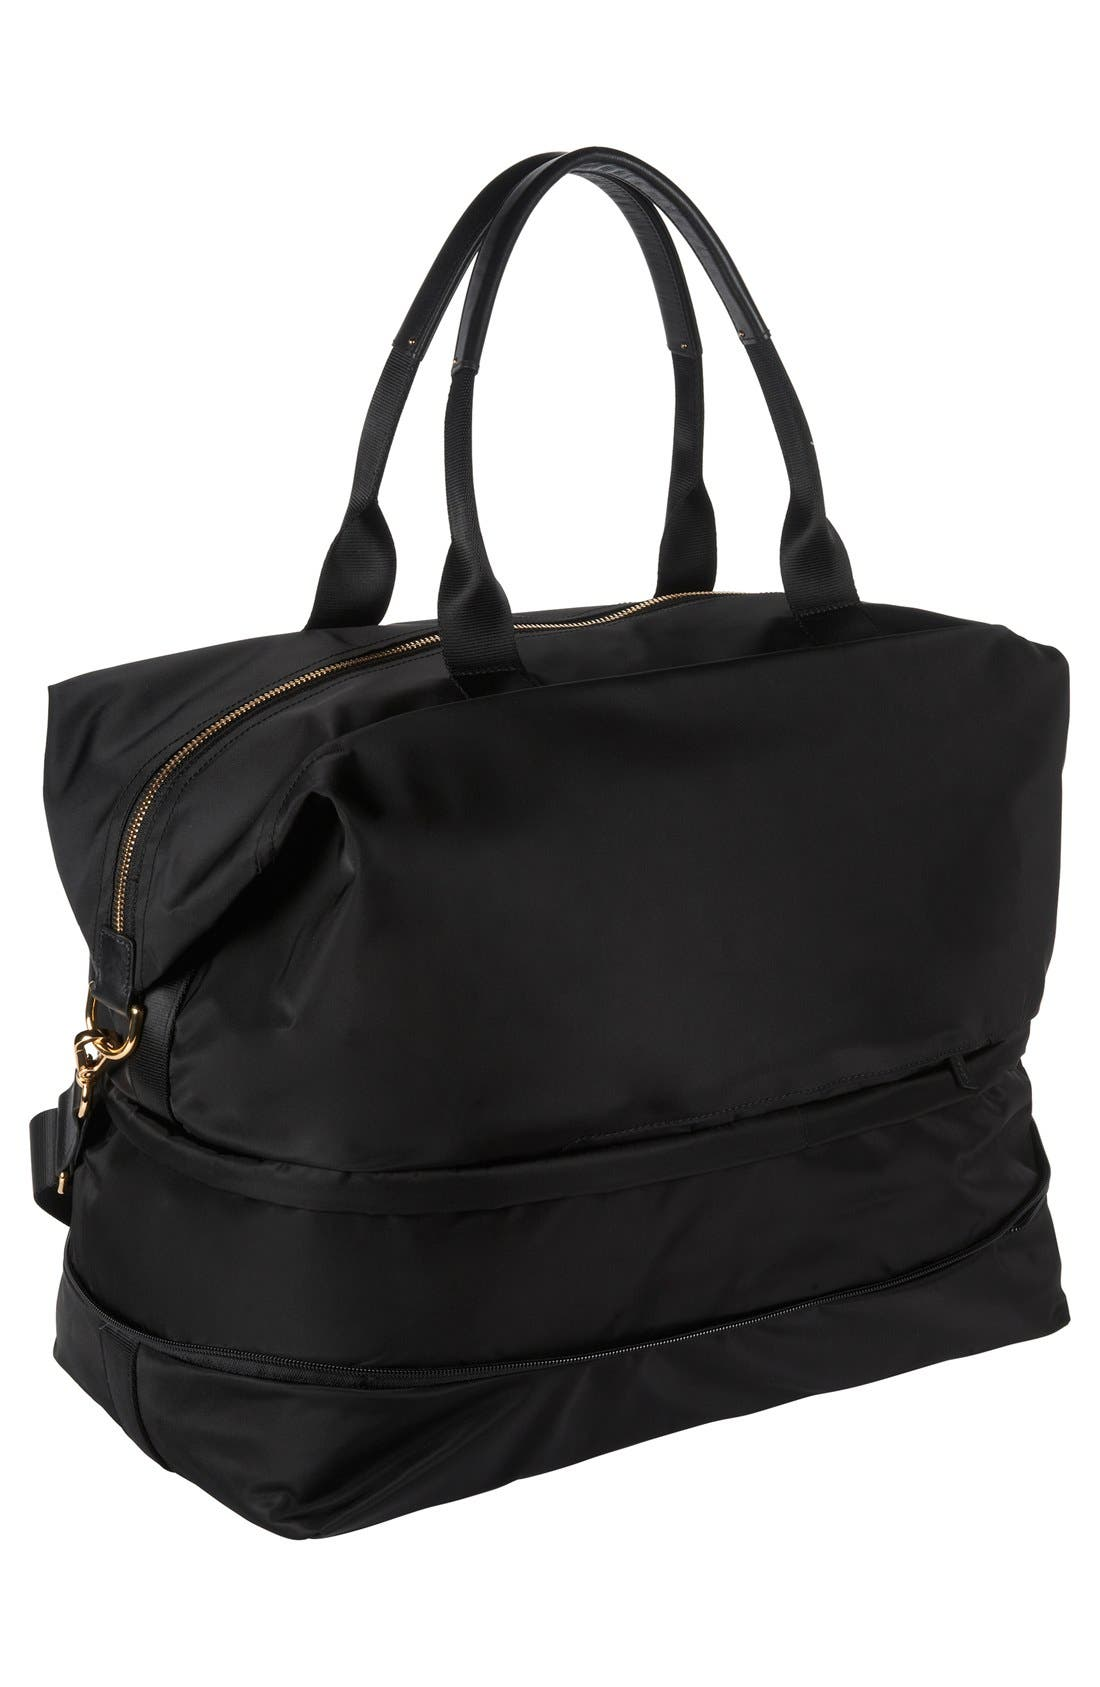 Durban Expandable Duffel Bag,                             Alternate thumbnail 6, color,                             Black